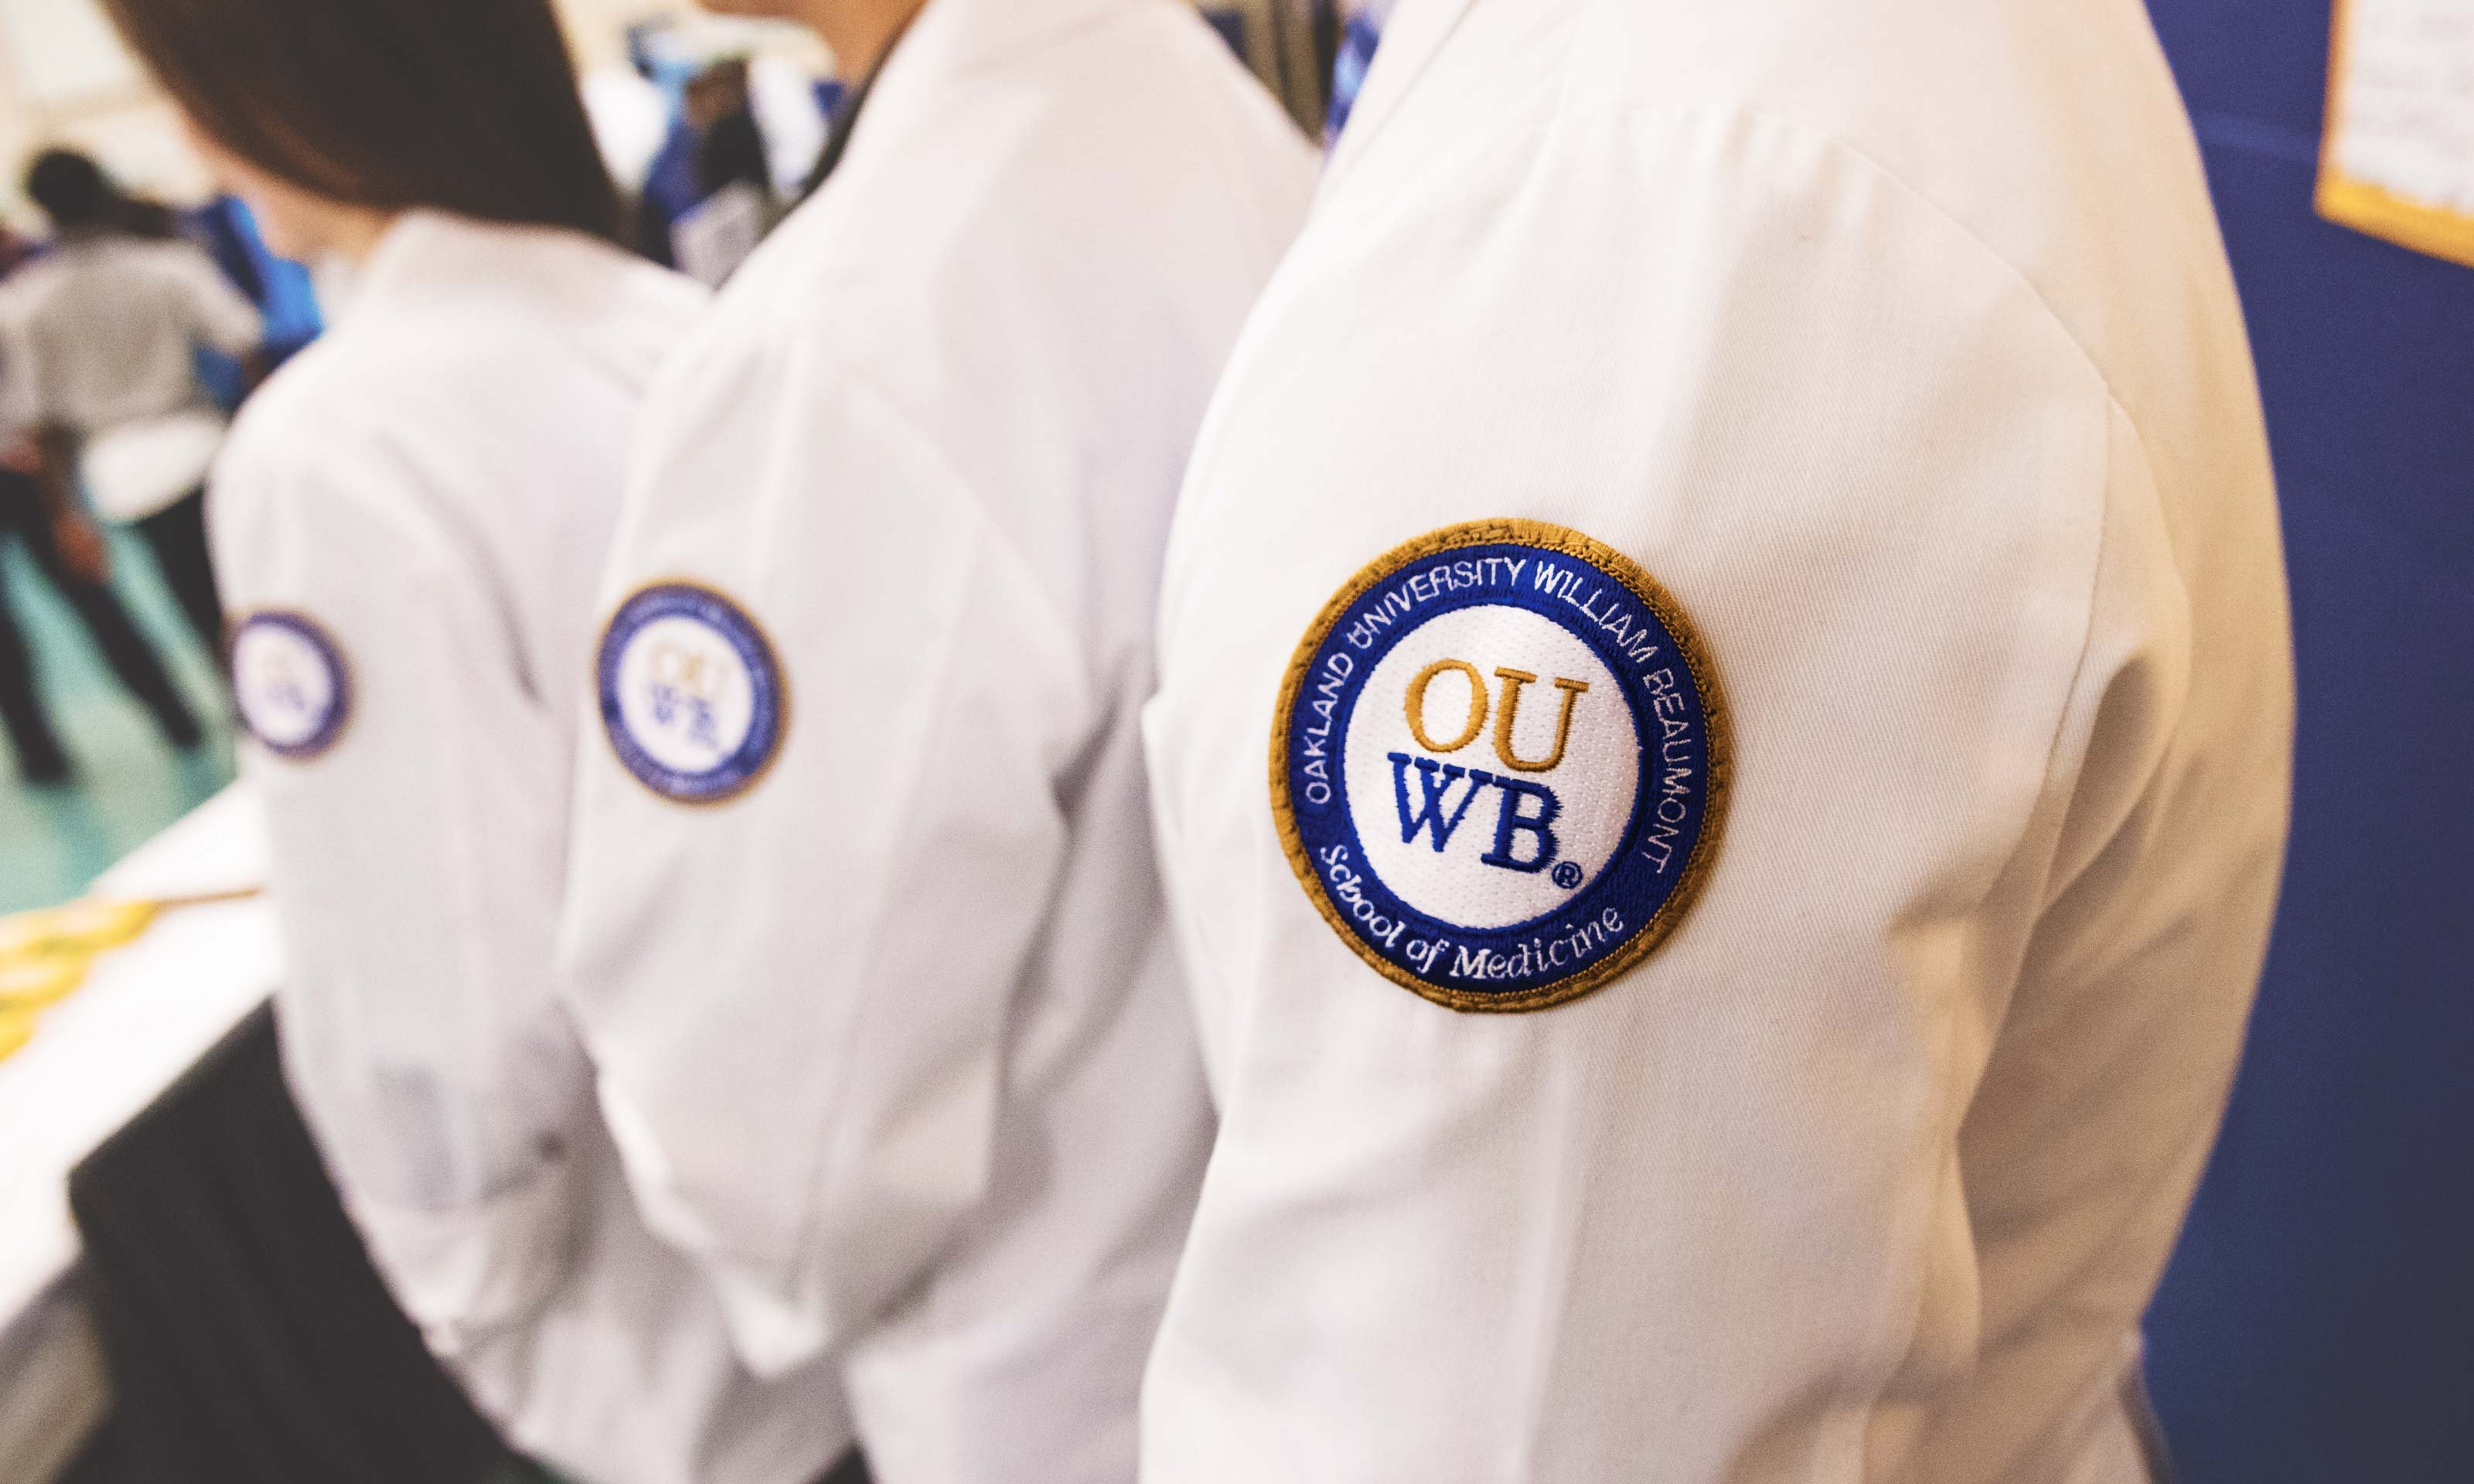 O U W B students in white coats. The O U W B logo crest is in the front of the photo, on the white coats.